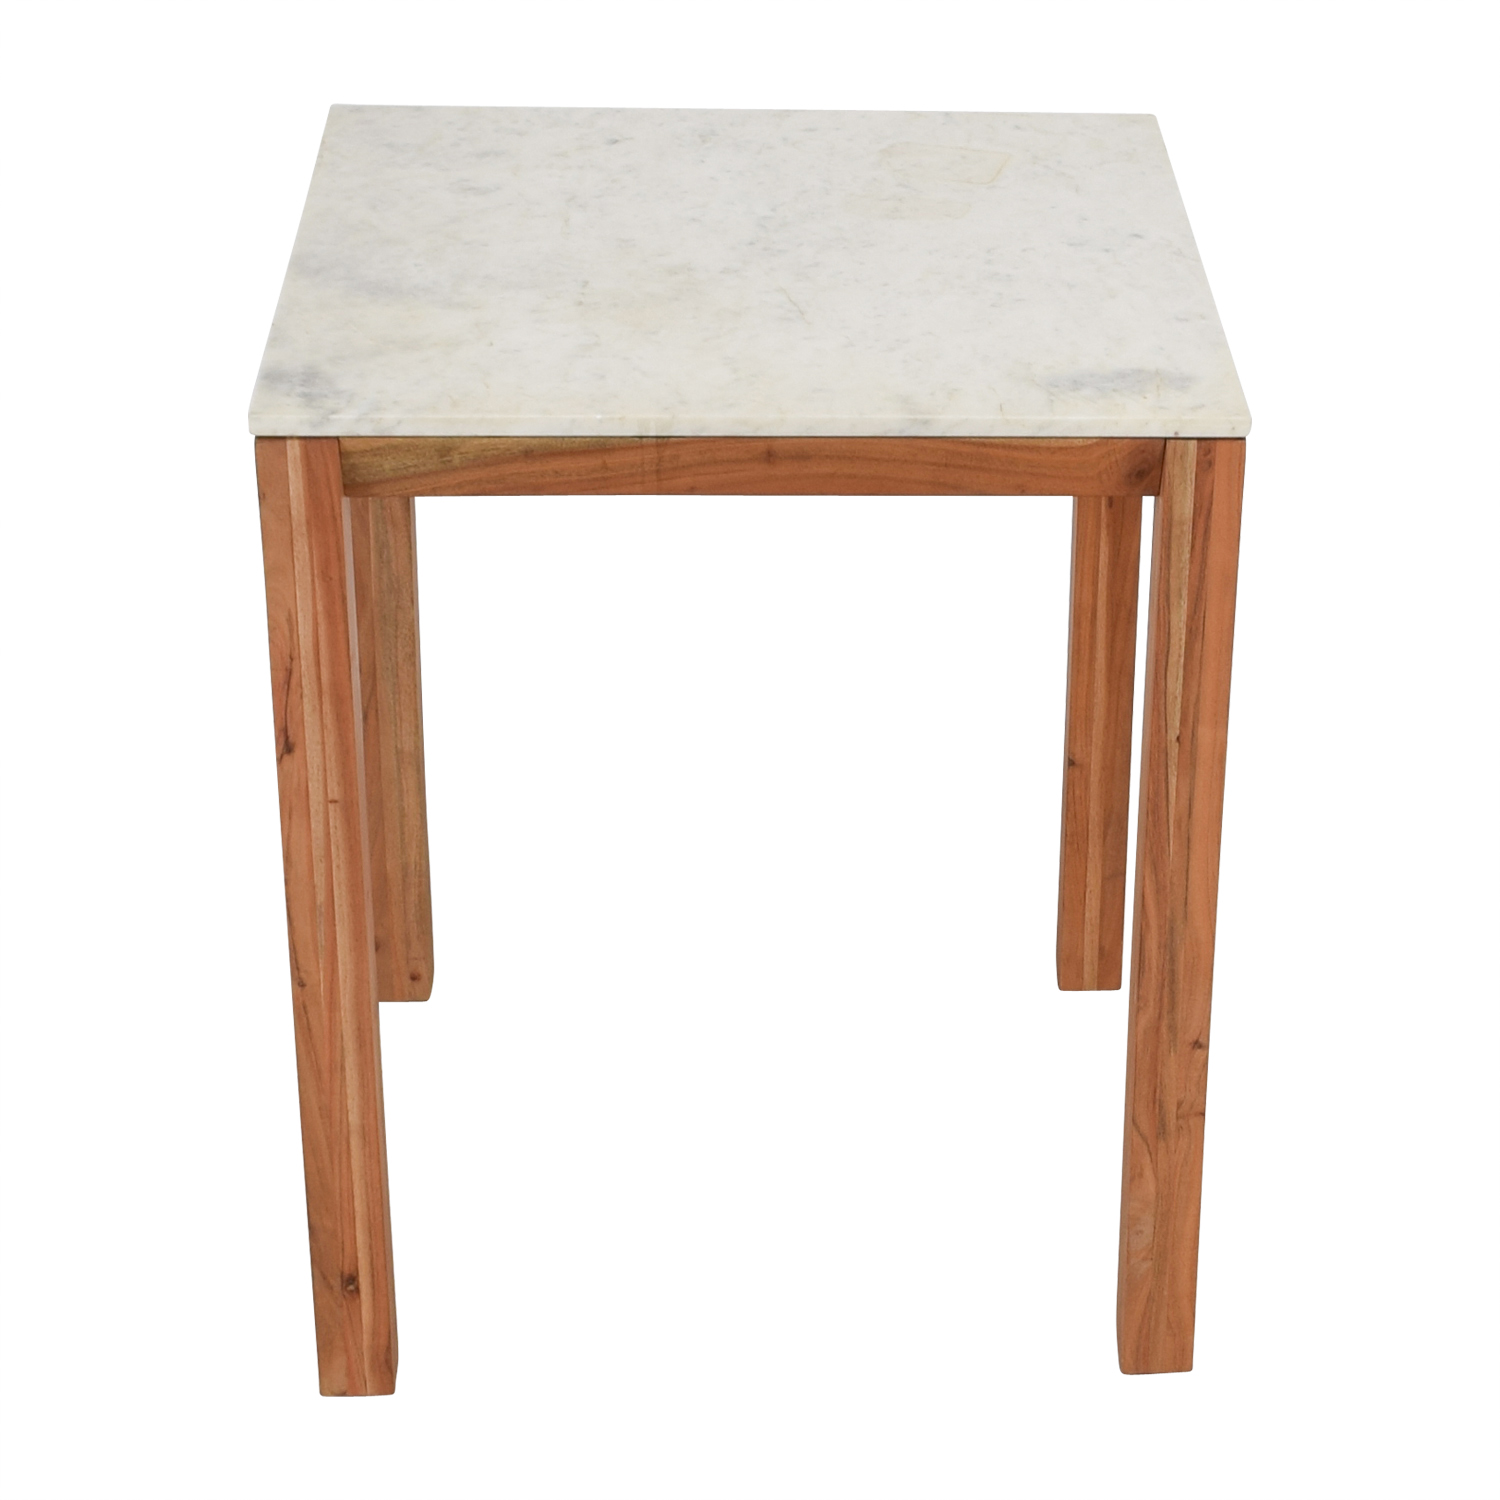 CB2 CB2 Palate Marble Counter Table used